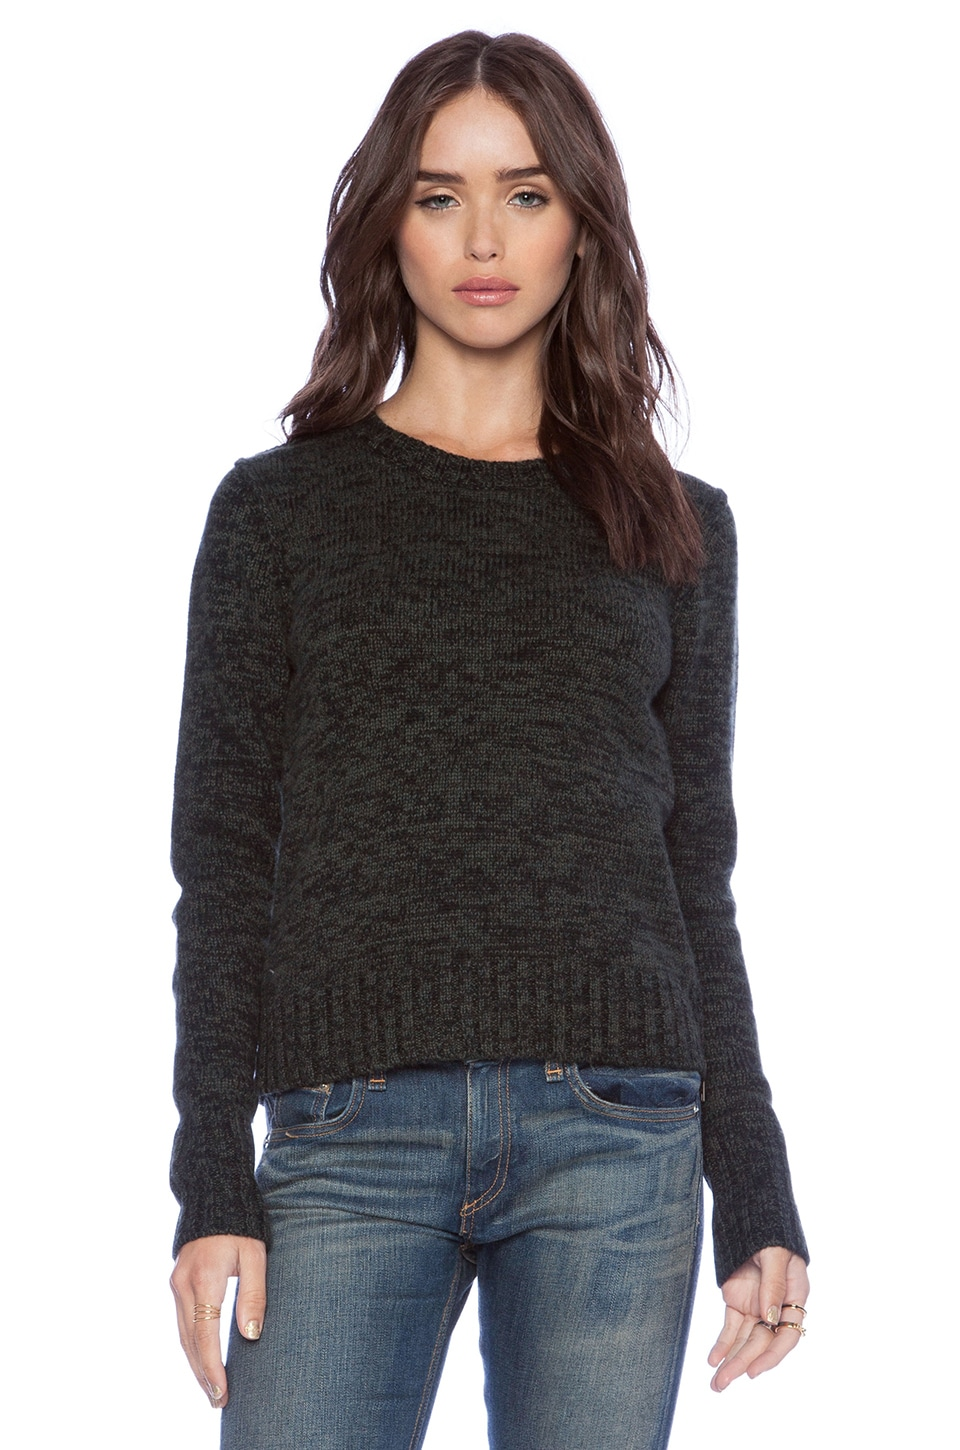 Autumn Cashmere Tweed Crew with Elbow Patches in Moss & Black